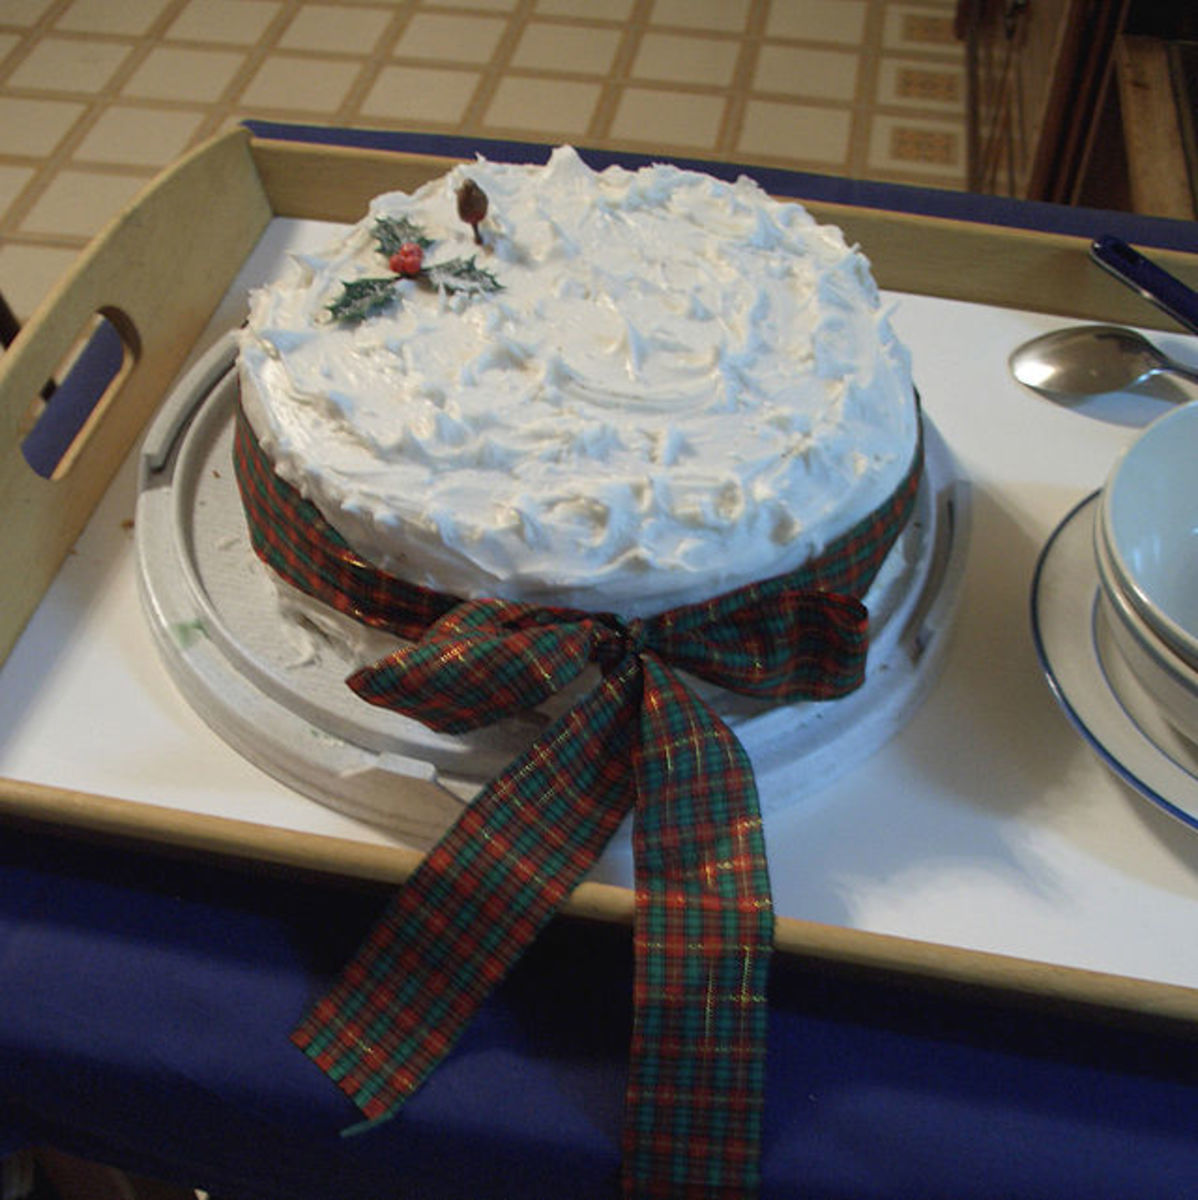 You may want to dress your cake up with icing.